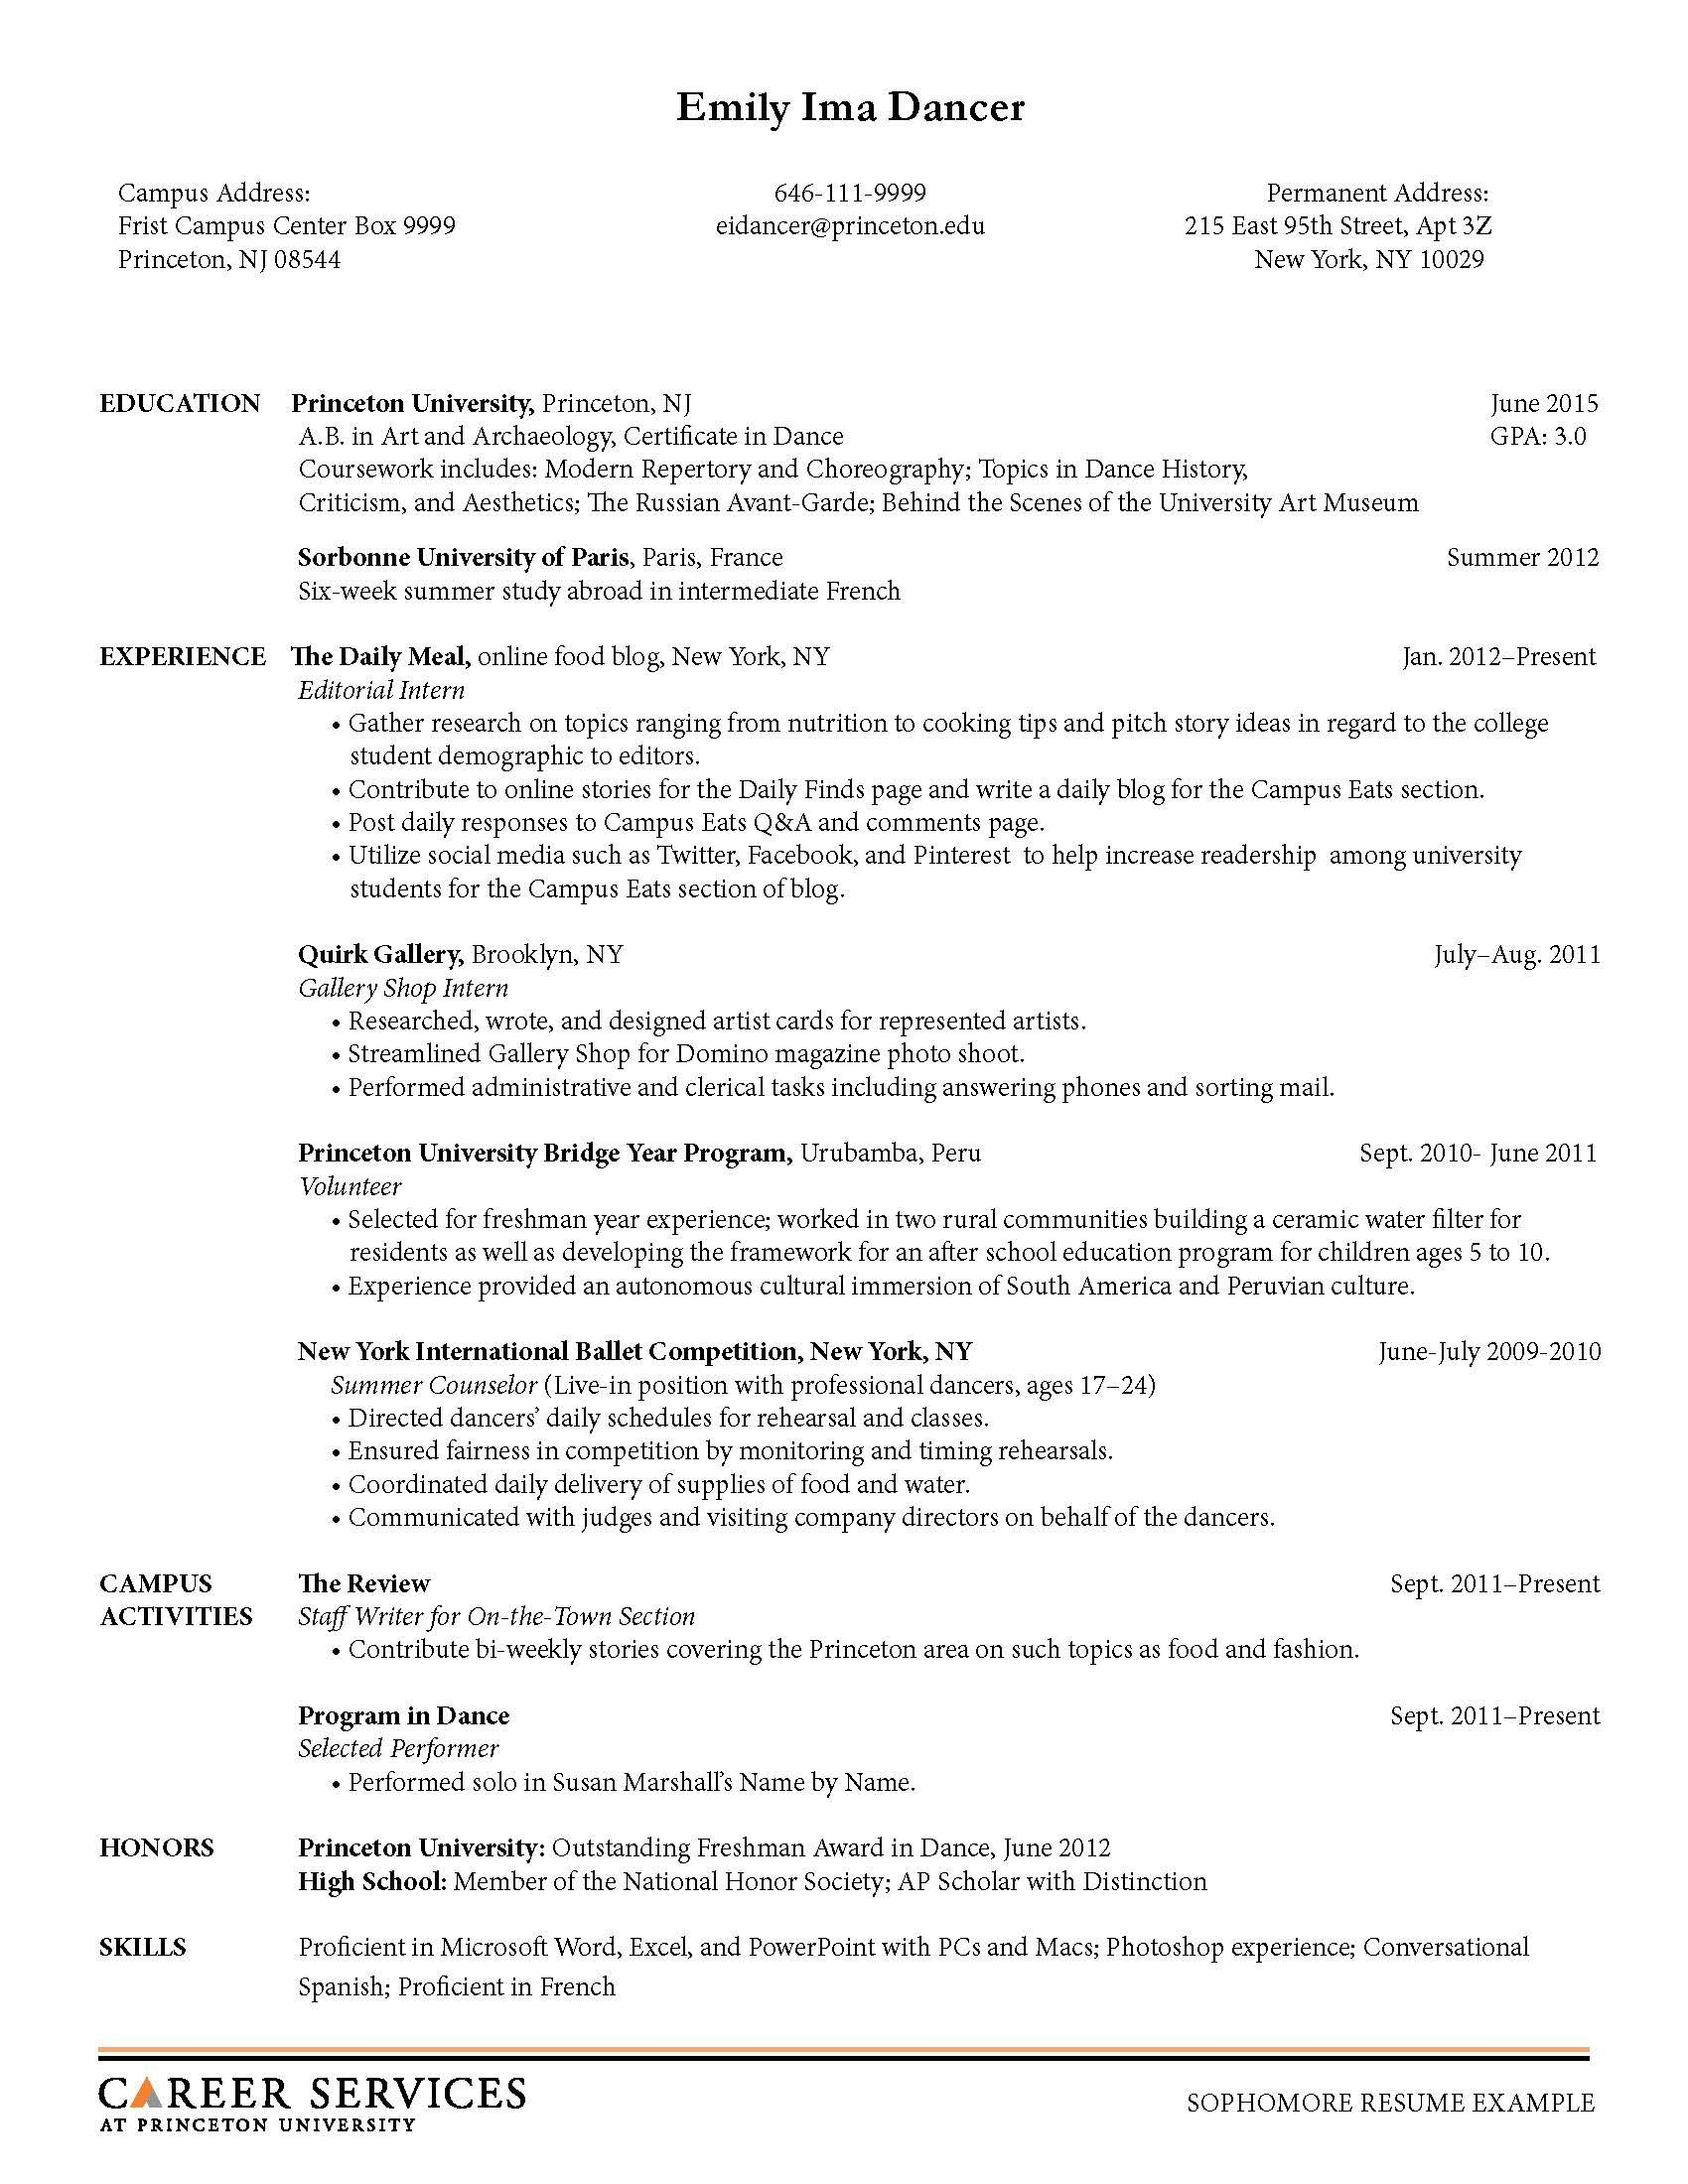 Picnictoimpeachus  Outstanding Sample Resume Resume And Career On Pinterest With Fetching Good Looking Resumes Besides Resumes For College Applications Furthermore Marketing Executive Resume With Beautiful Java Resumes Also Template Resume Word In Addition Nursing Objective Resume And New Grad Rn Resume Sample As Well As Service Technician Resume Additionally Resume For A Bank Teller From Pinterestcom With Picnictoimpeachus  Fetching Sample Resume Resume And Career On Pinterest With Beautiful Good Looking Resumes Besides Resumes For College Applications Furthermore Marketing Executive Resume And Outstanding Java Resumes Also Template Resume Word In Addition Nursing Objective Resume From Pinterestcom